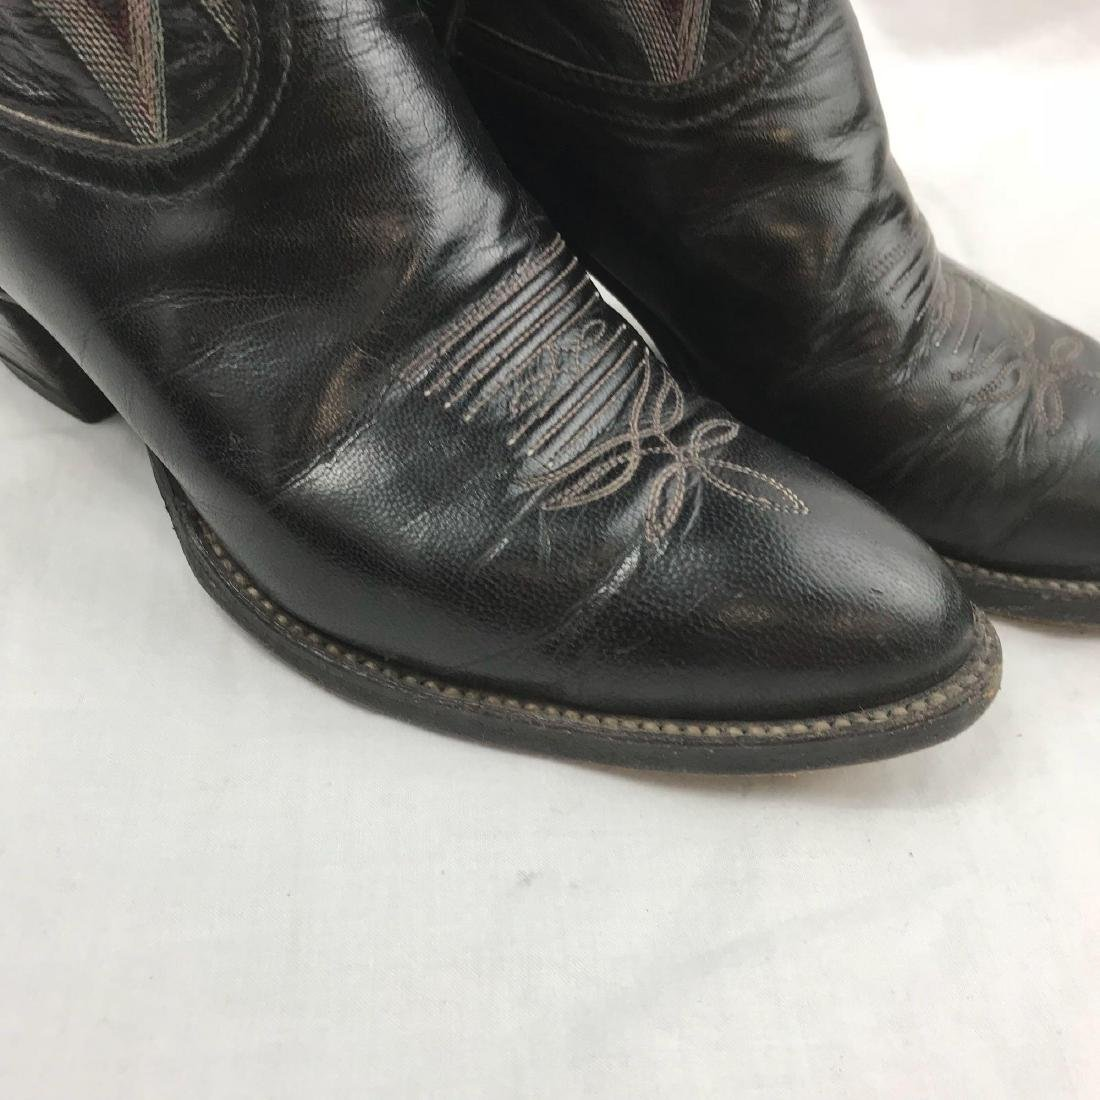 Tony Lama size 8 Cowgirl Boots - 7